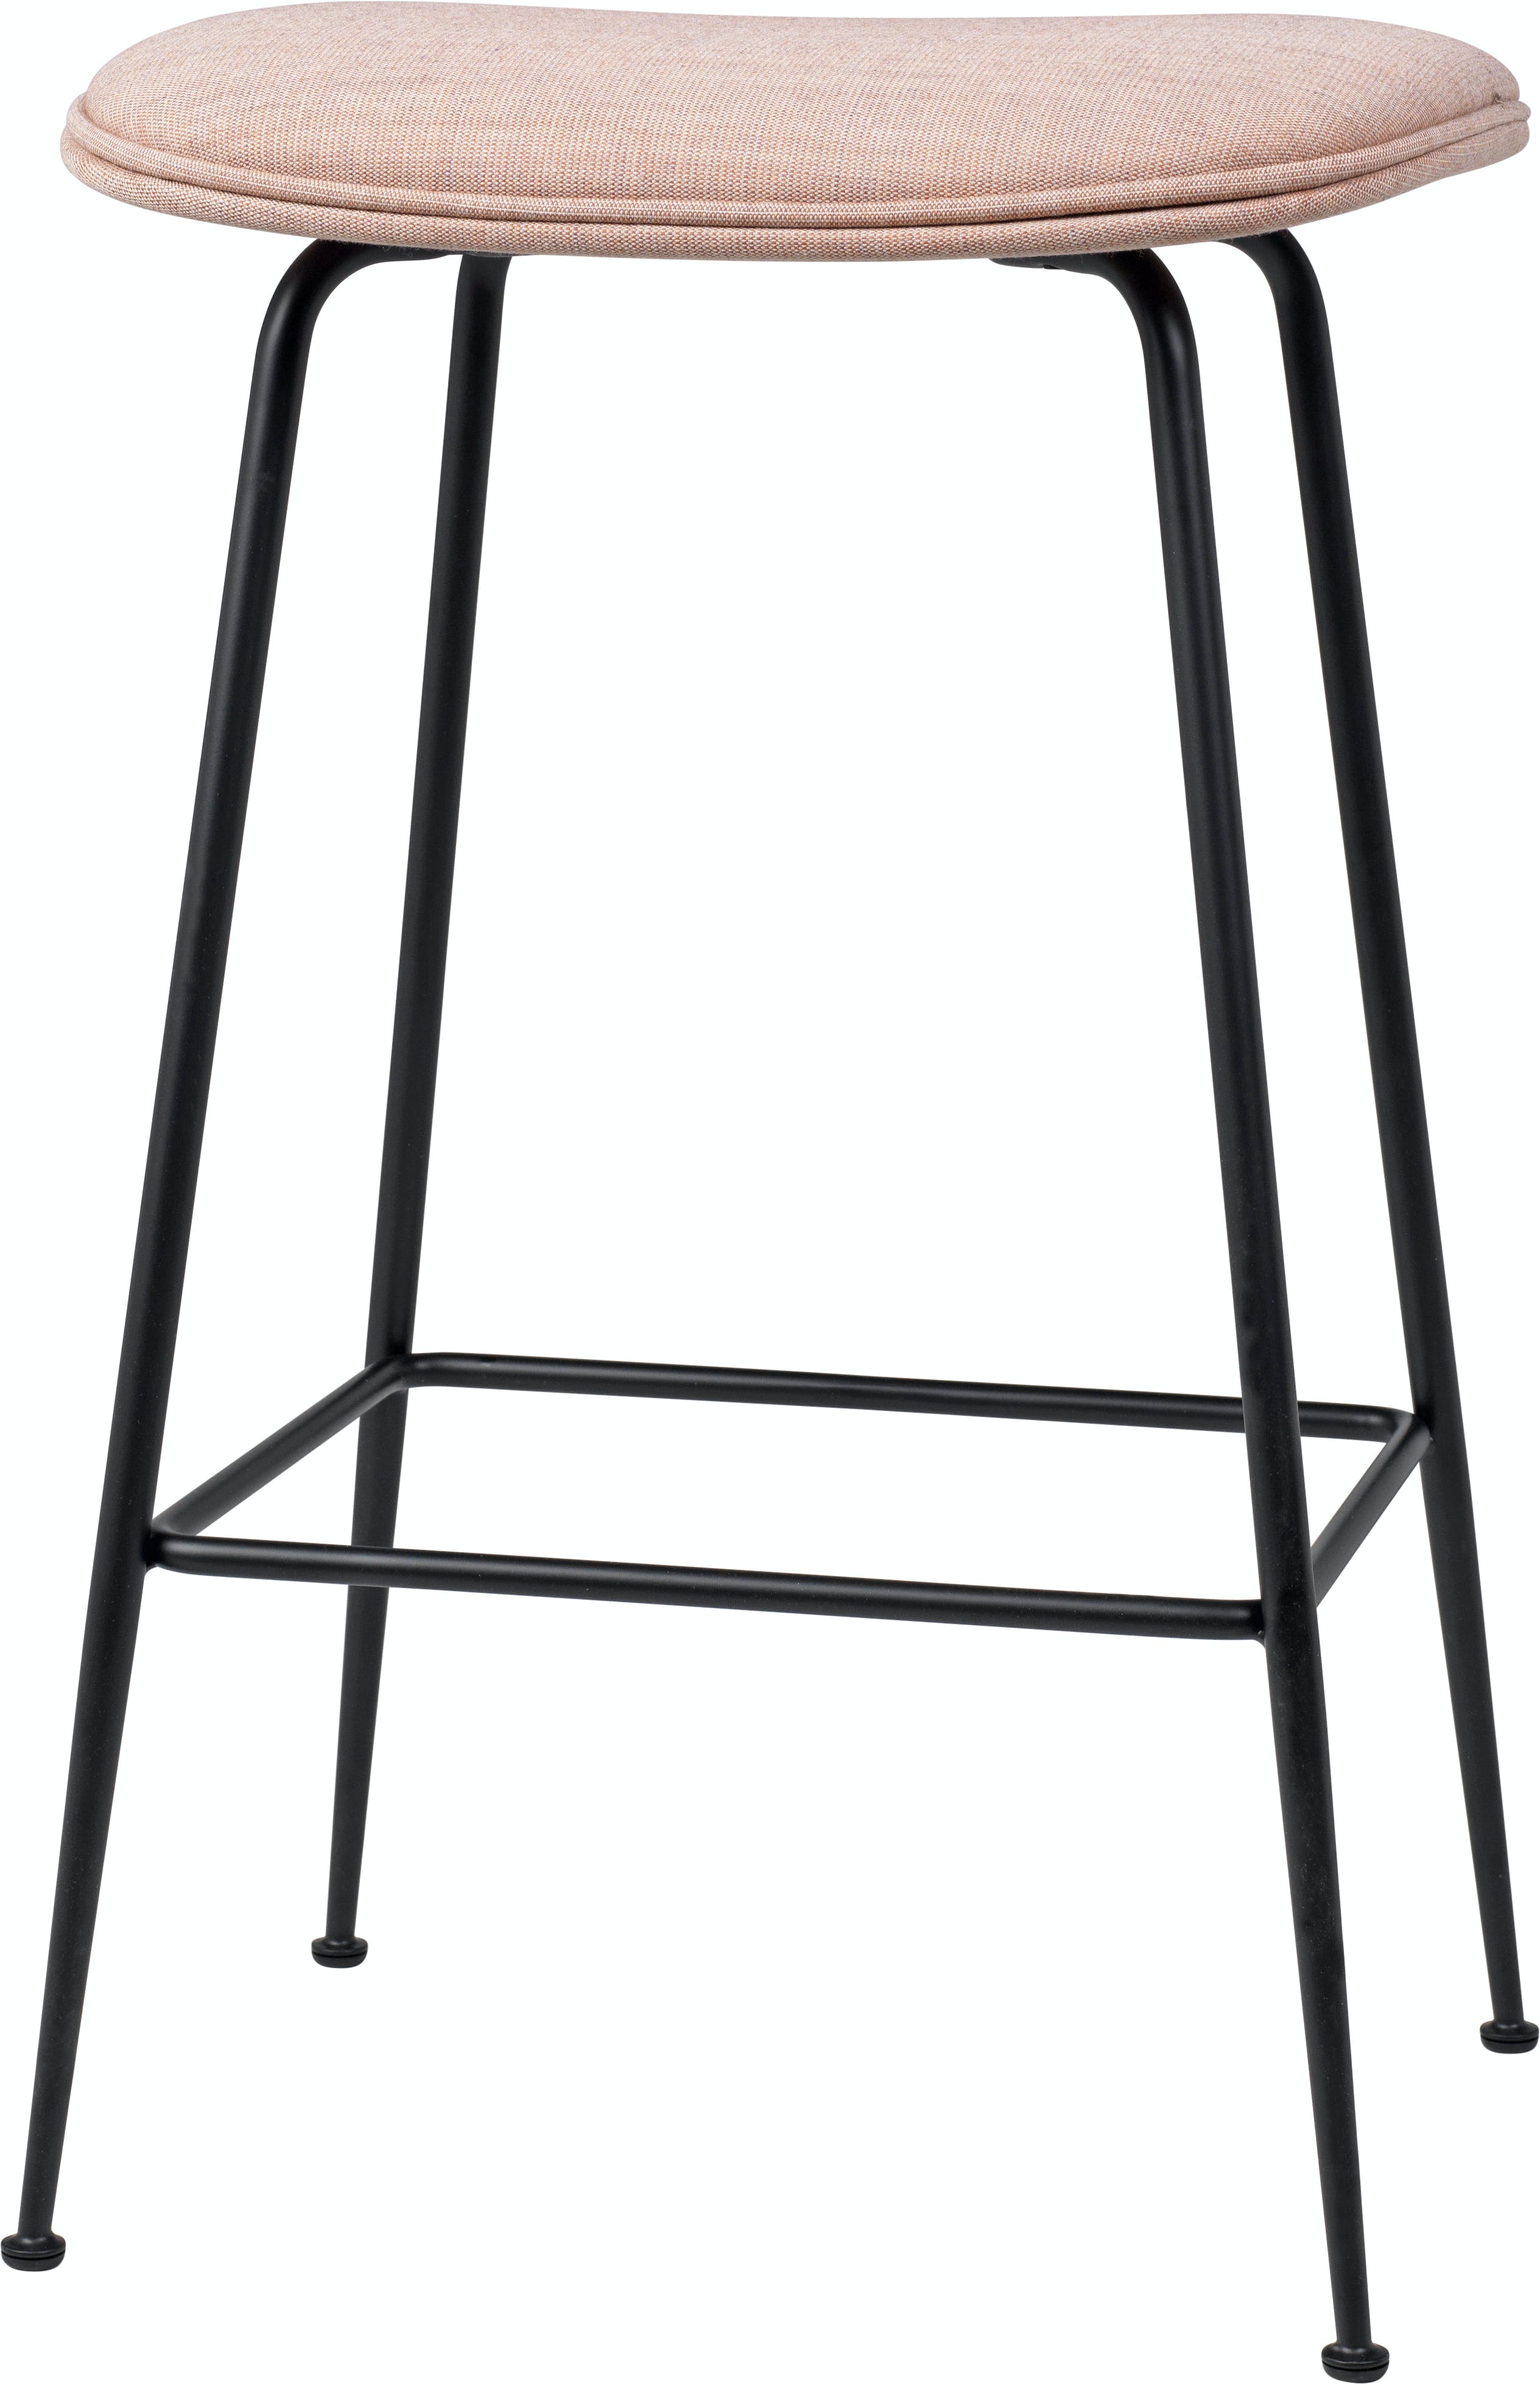 Beetle Counter Stool Conic Black Remix 614